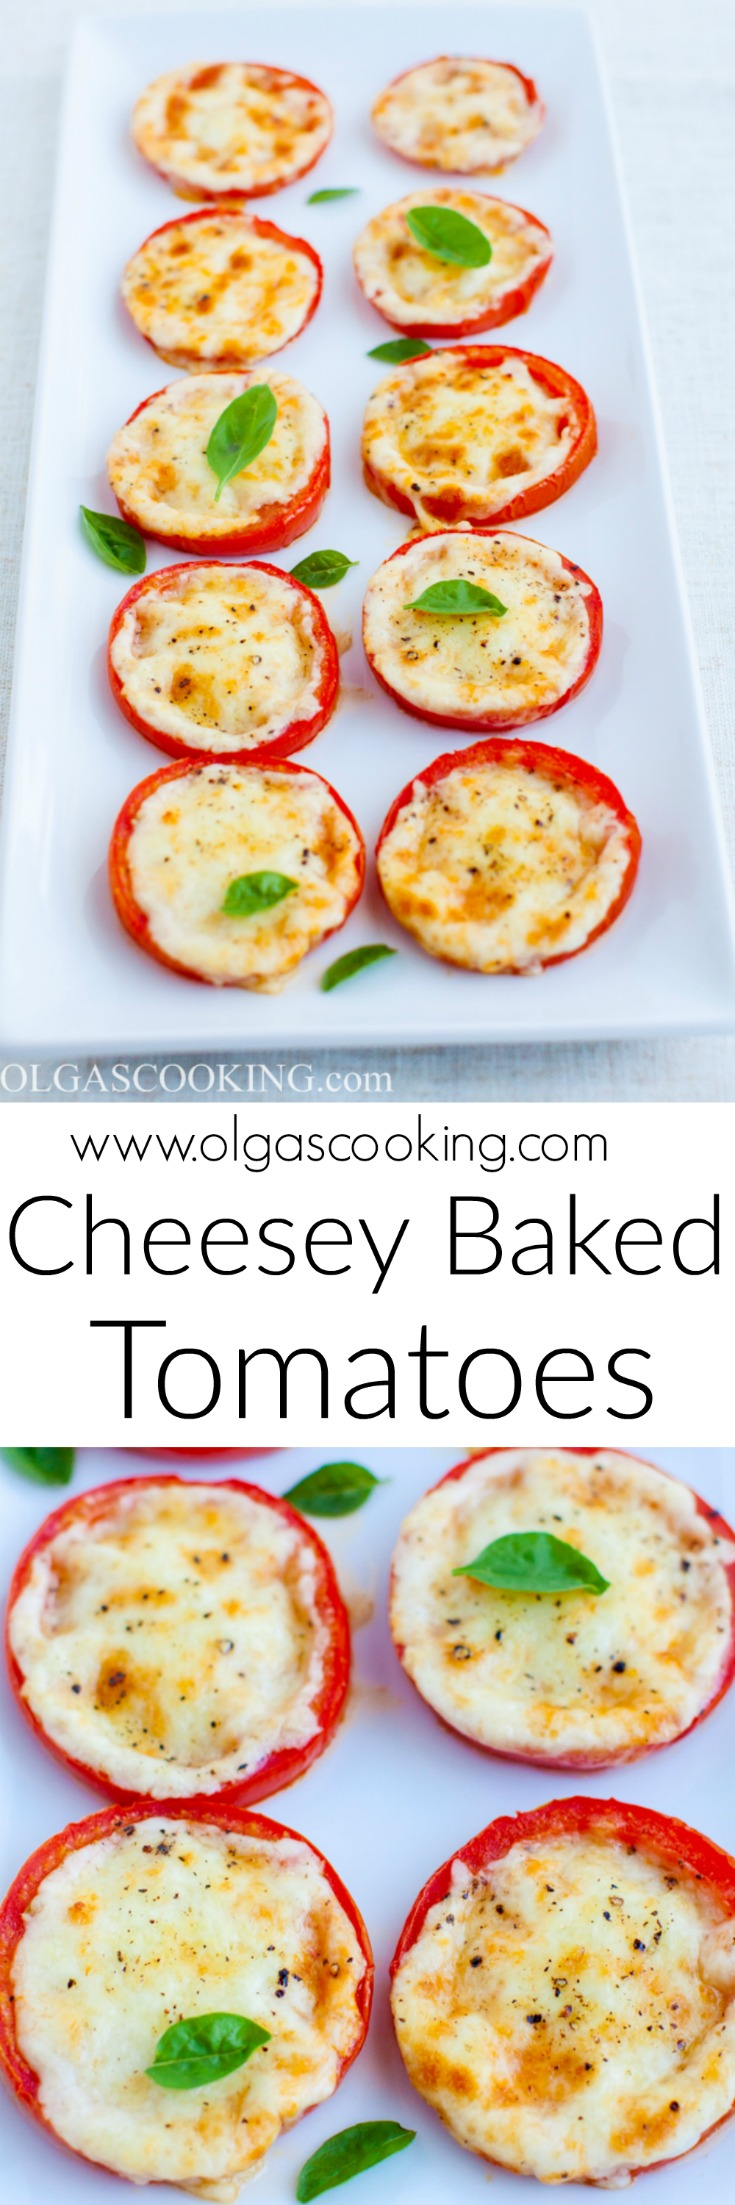 cheesey-baked-tomatoes